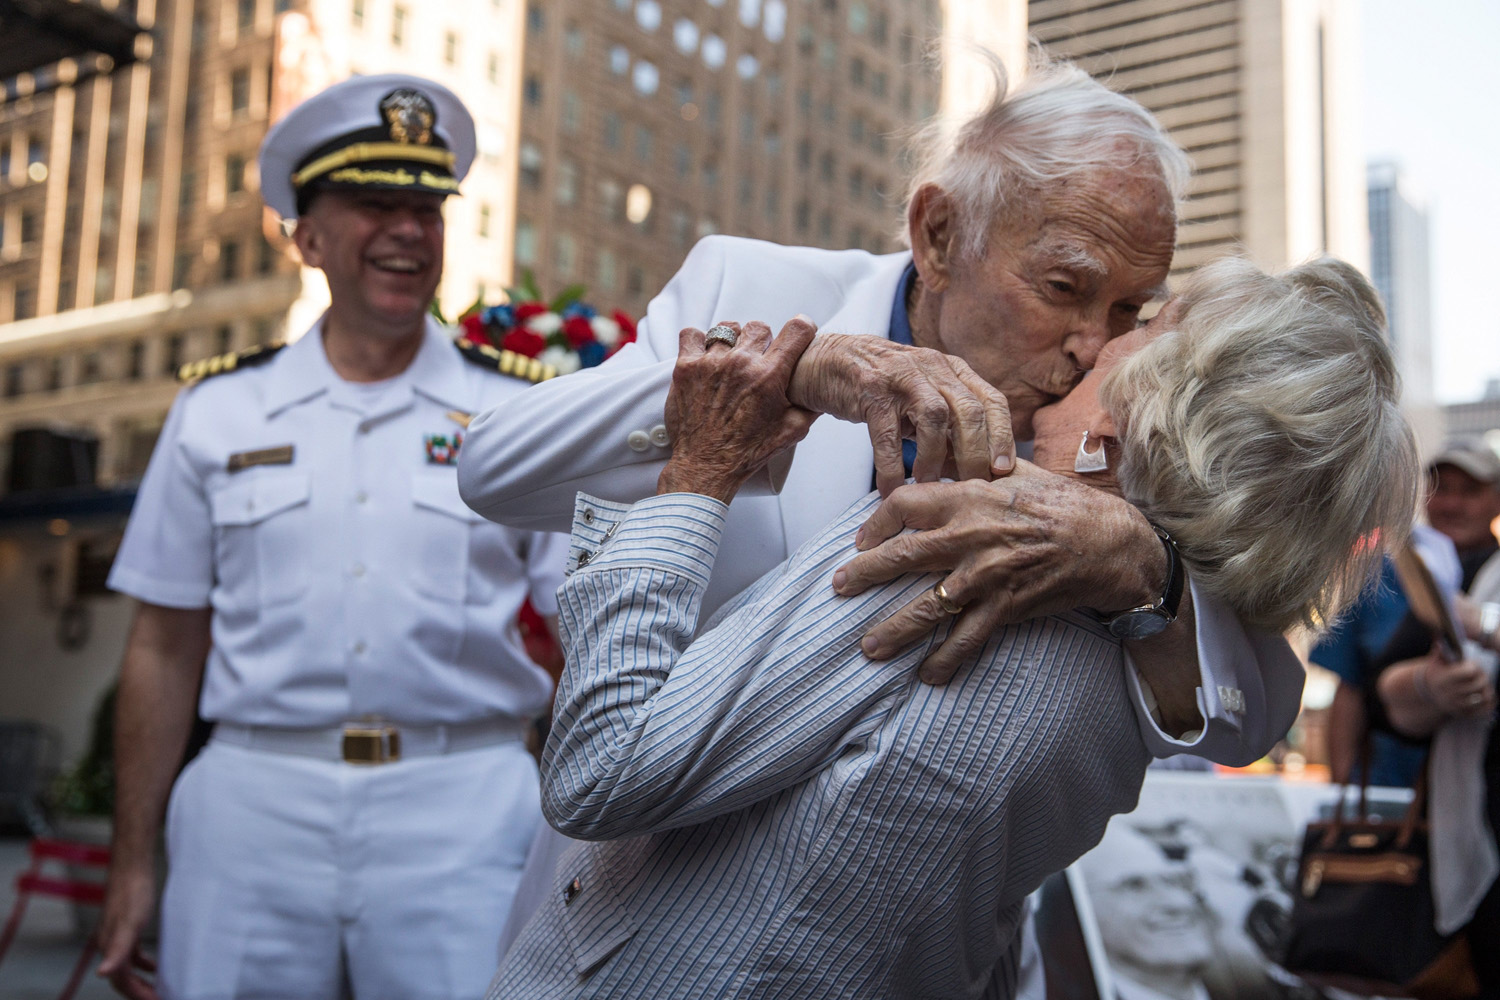 Sydnor Thompson, 90, kisses his wife, Harriette Thompson, 91, while reenacting the Times Square Kiss photo, taken by Alfred Eisenstaedt, to mark the 69-Anniversary of the end of World War Two victory over Japan on August 14, 2014 in Times Square in New York City.